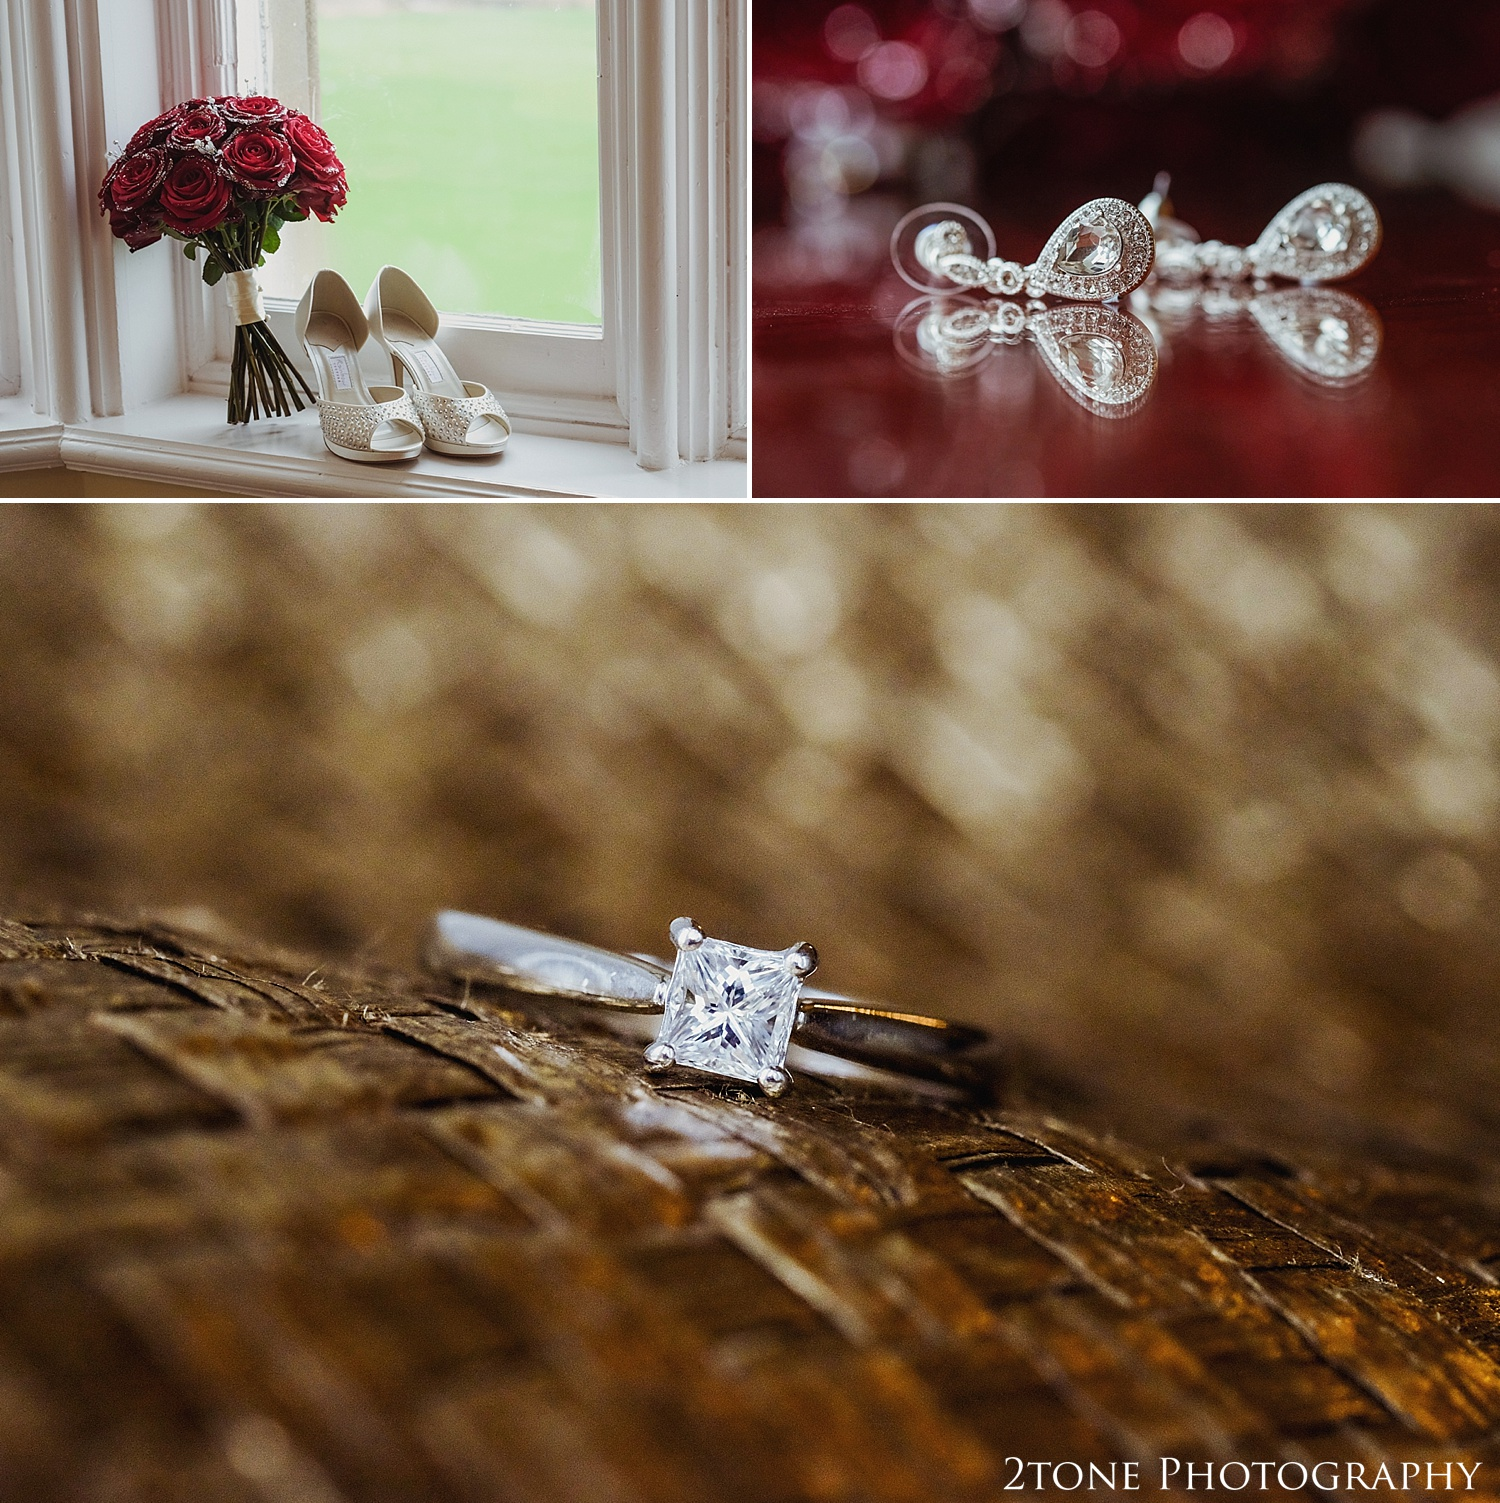 Wedding photography at Matfen Hall by www.2tonephotography.co.uk